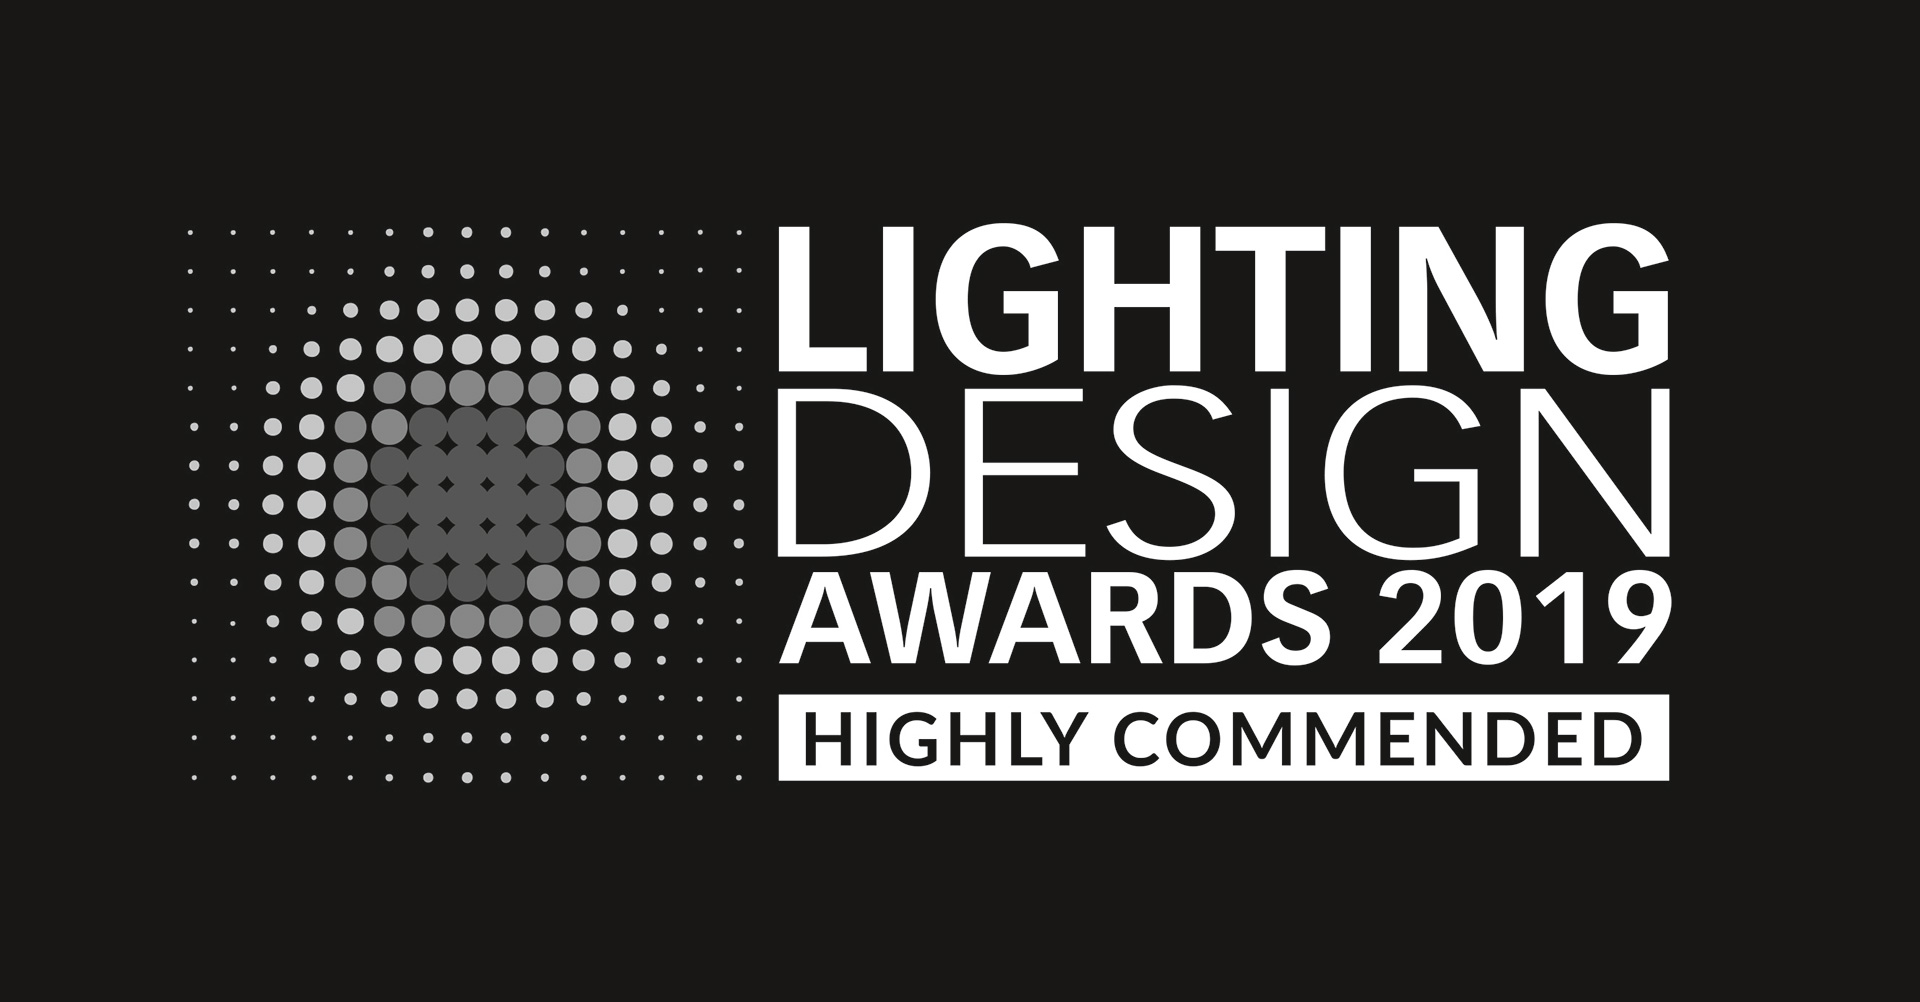 PJC-Light-Studio-Lighting-Design-Awards-2019-Highly-Commended.jpg